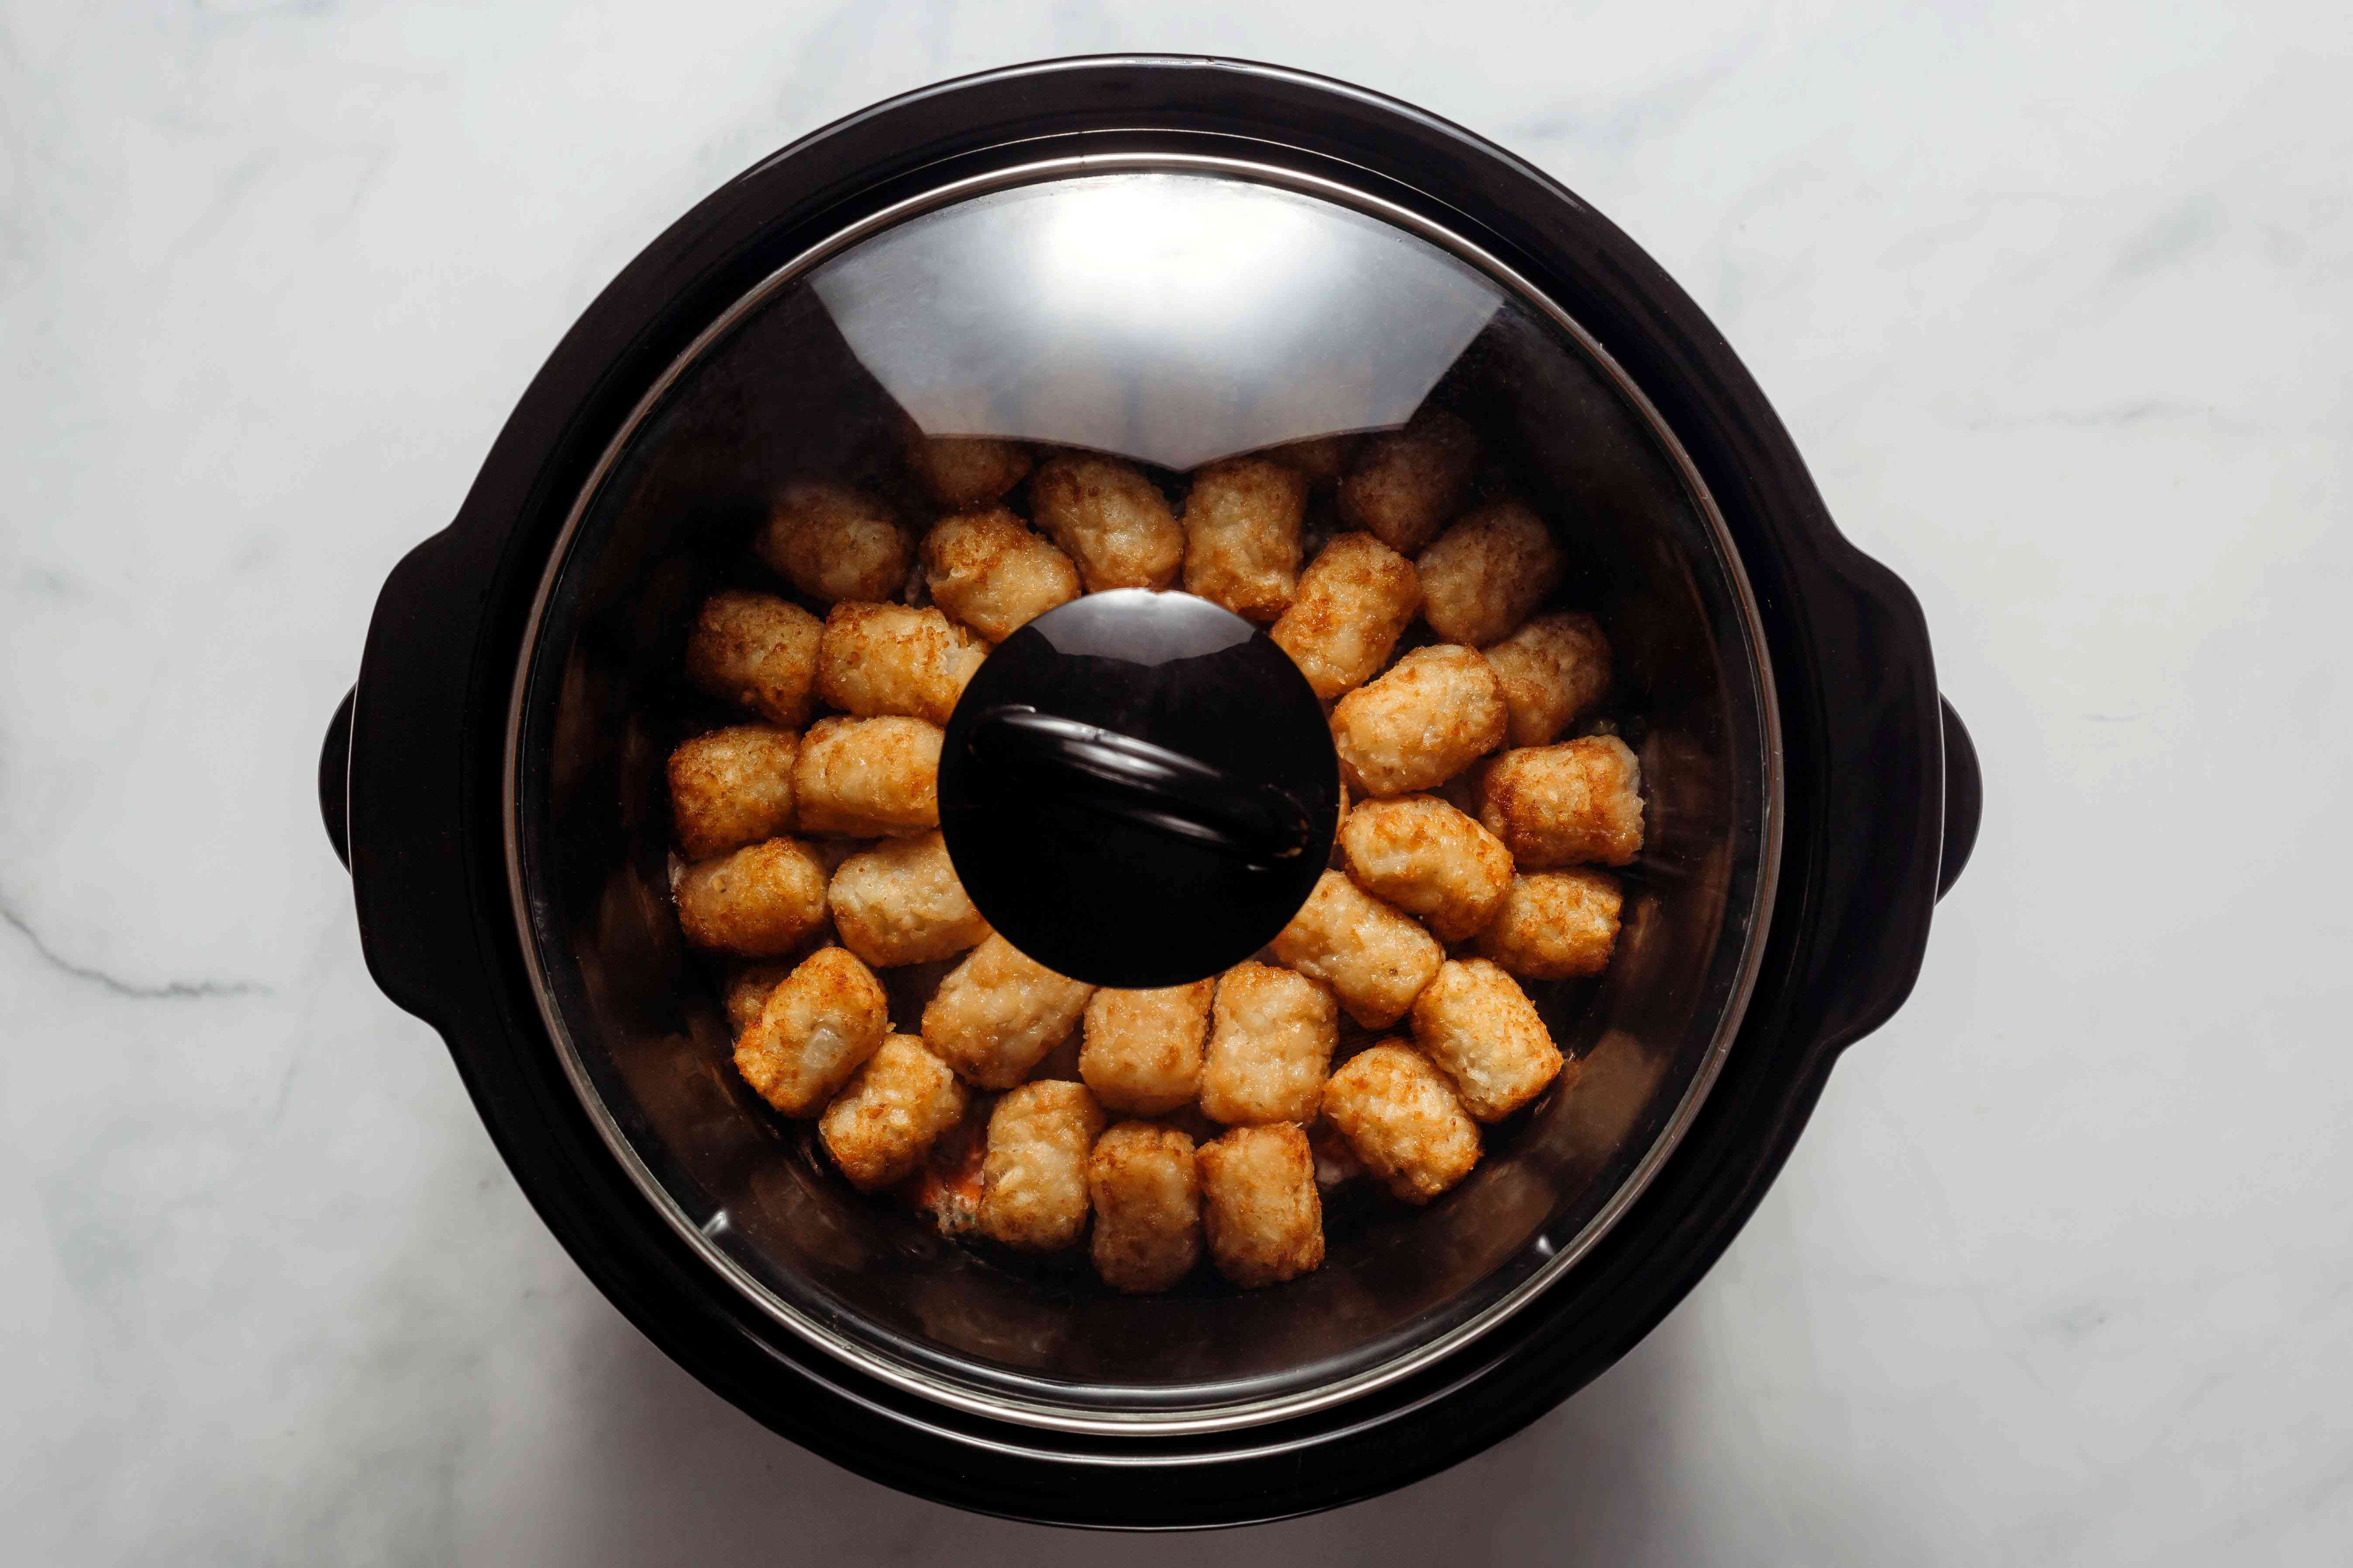 Tater Tot Casserole in a Slow Cooker